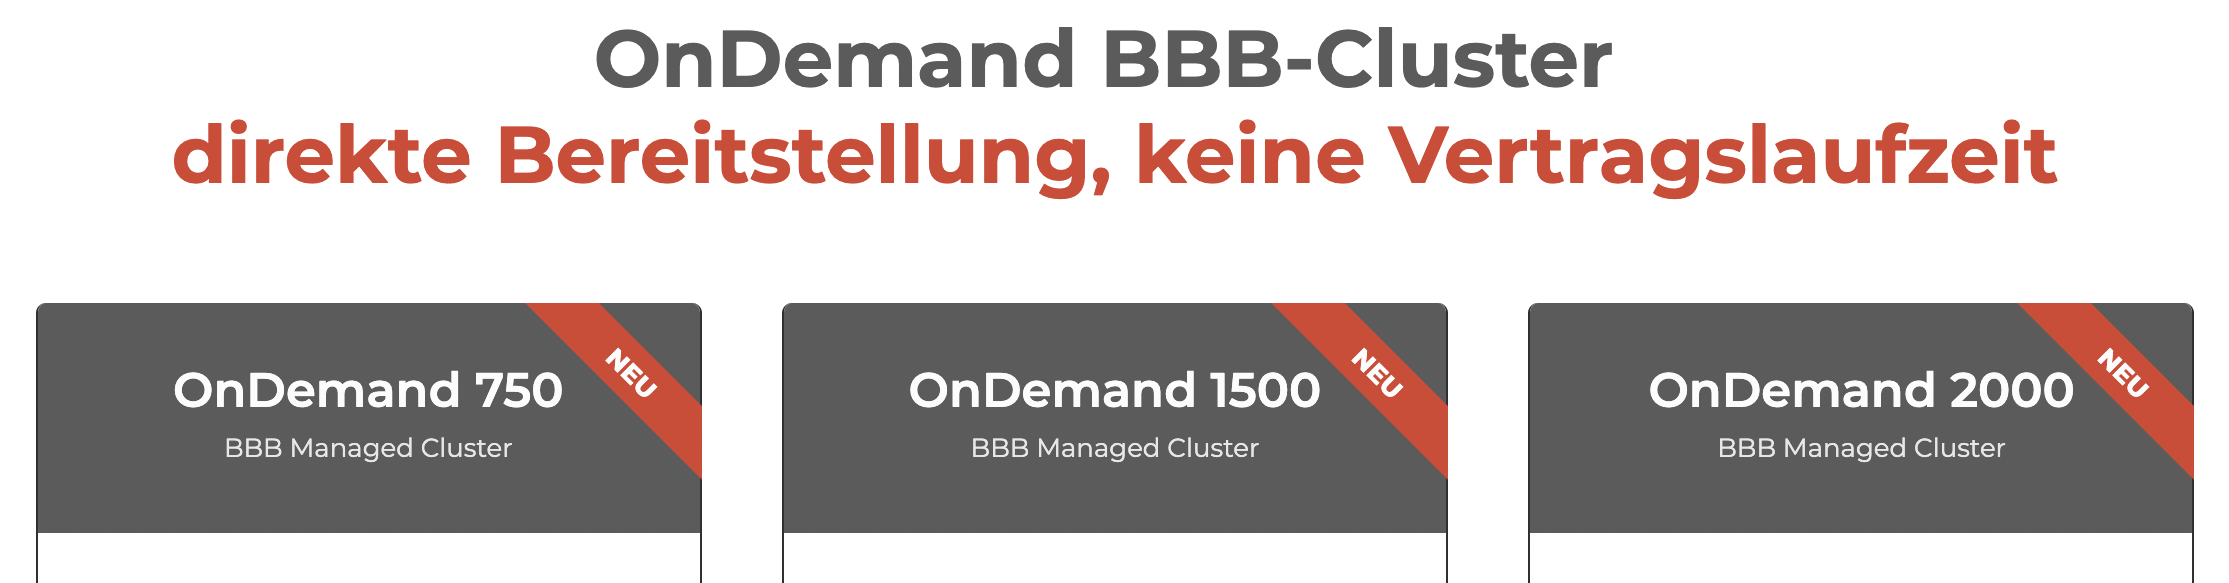 BBB OnDemand Cluster